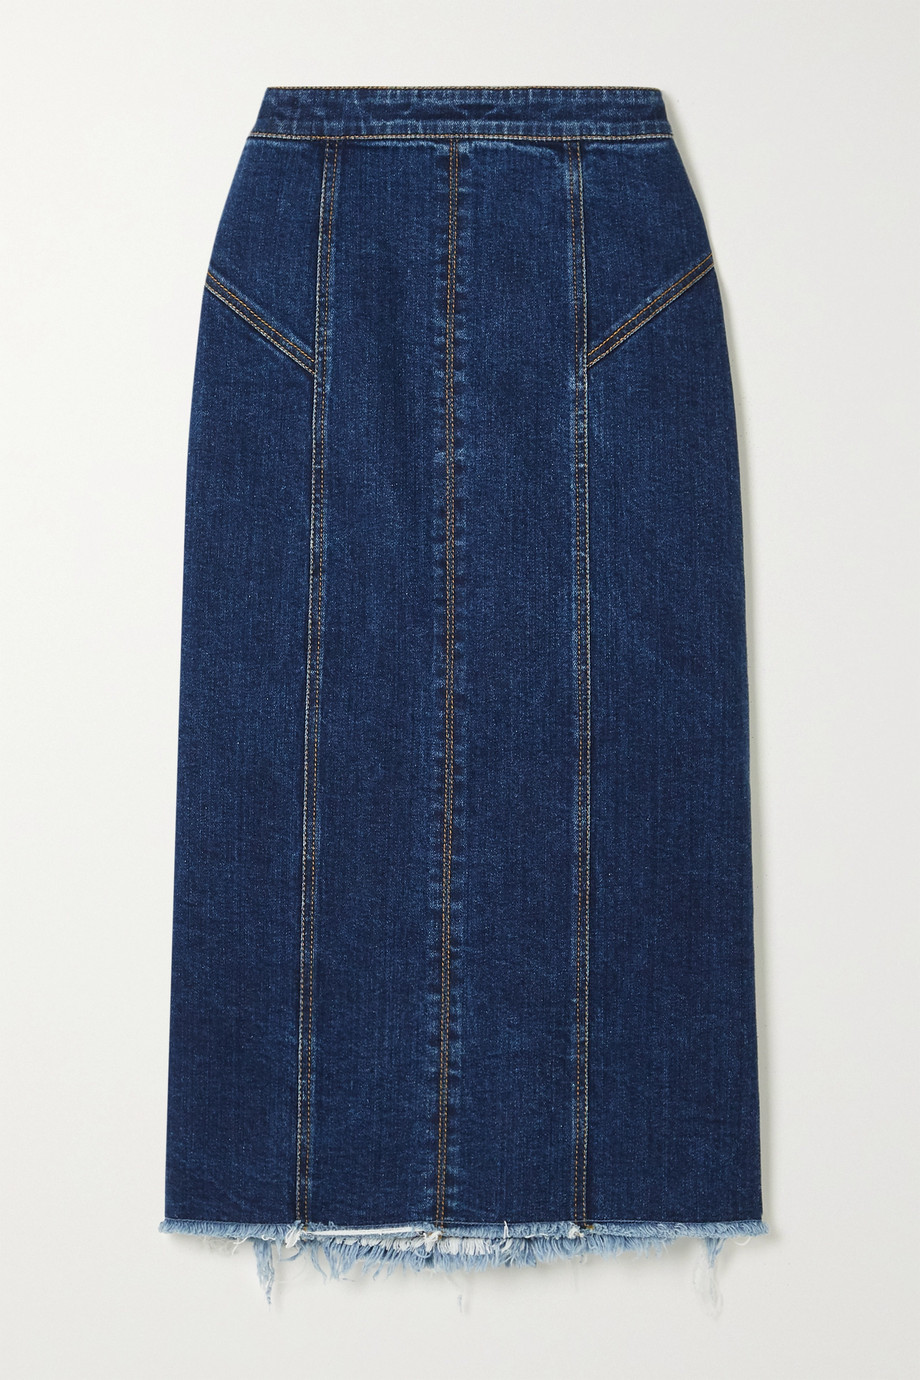 Alexander McQueen Frayed denim midi skirt